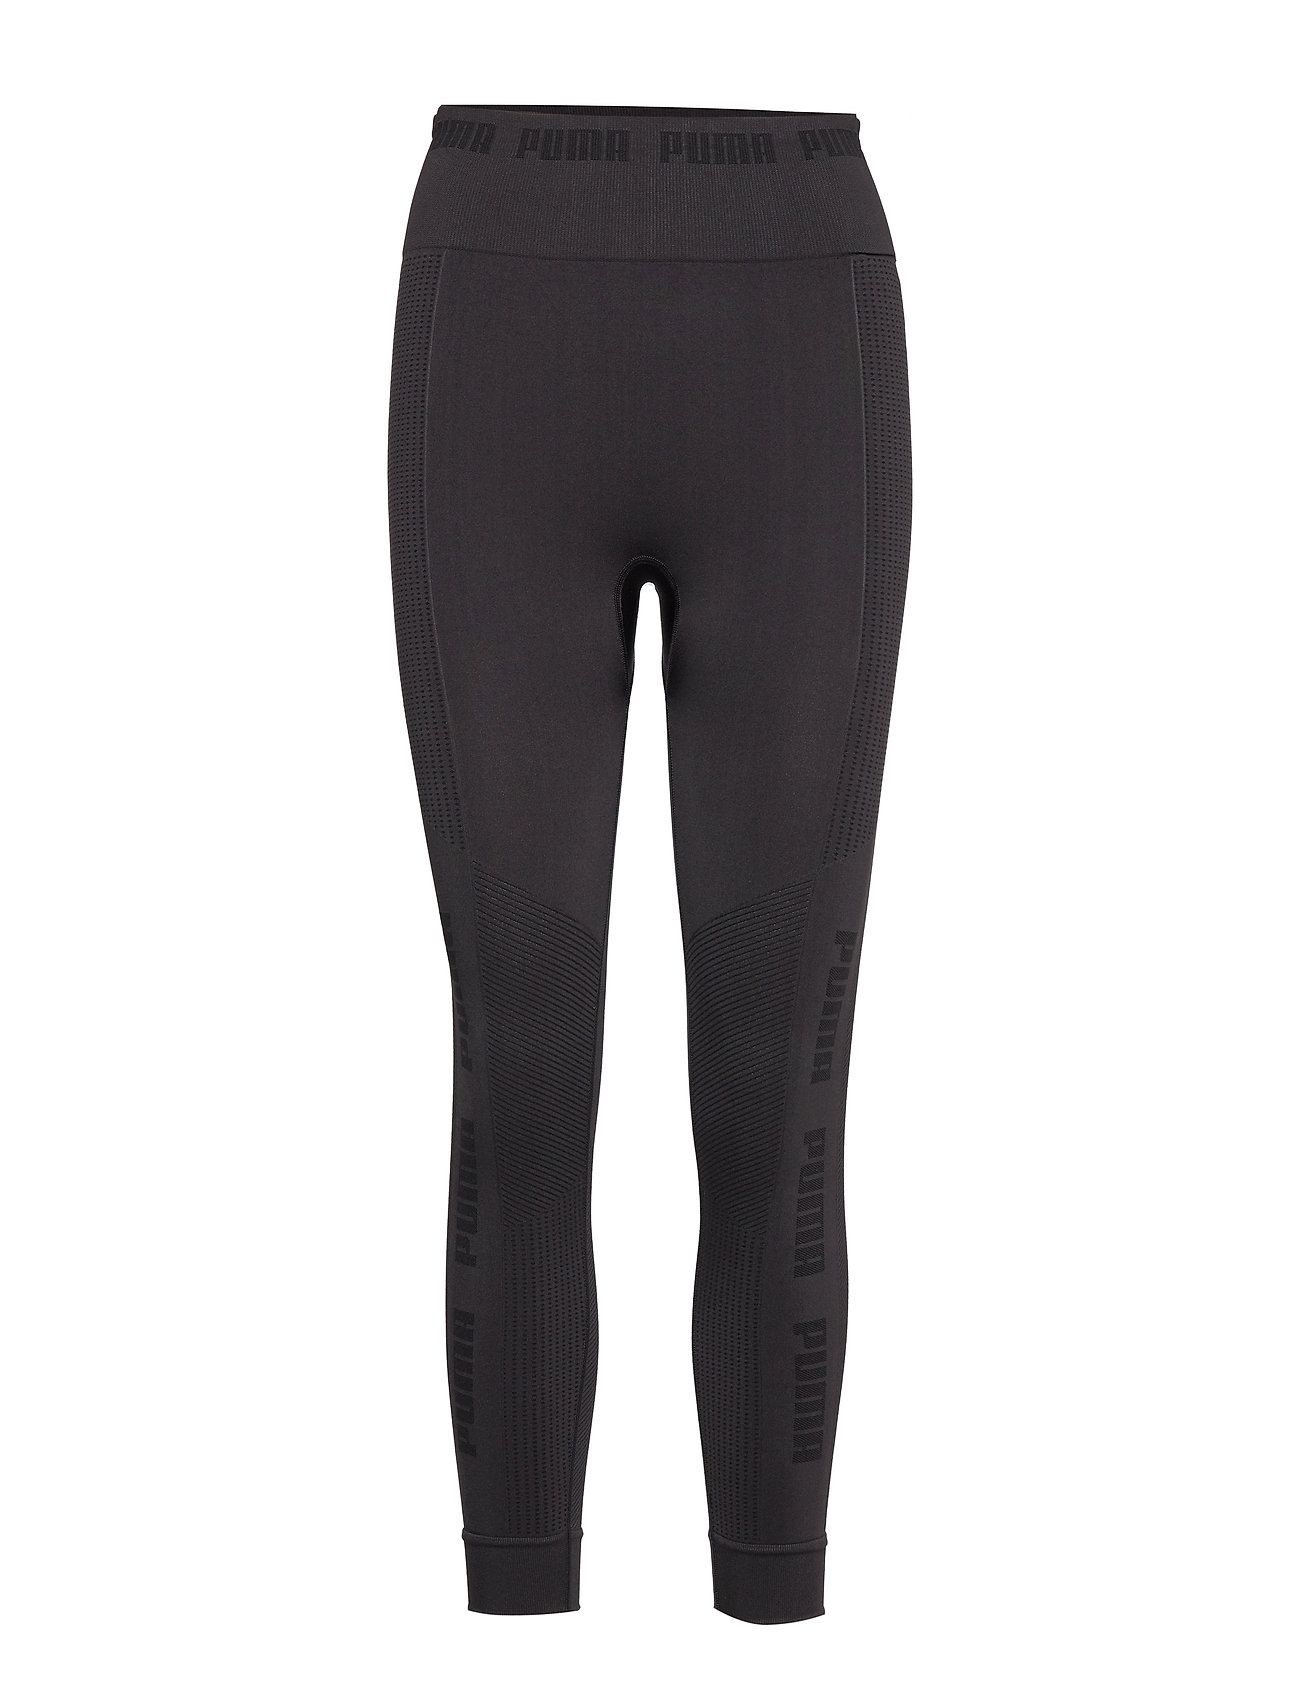 PUMA evoKNIT Seamless Leggings - PUMA BLACK